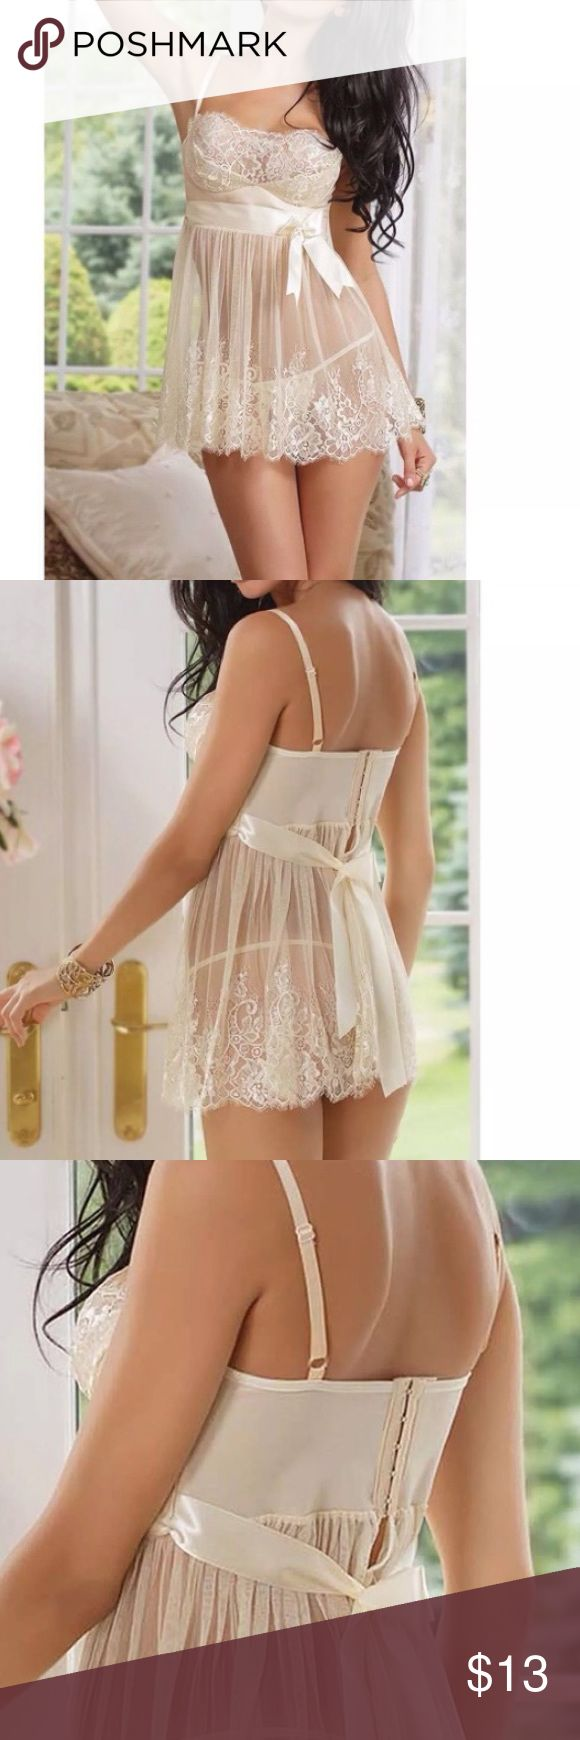 Sexy Sheer BabyDoll Lingerie Brand new fits a small Intimates & Sleepwear